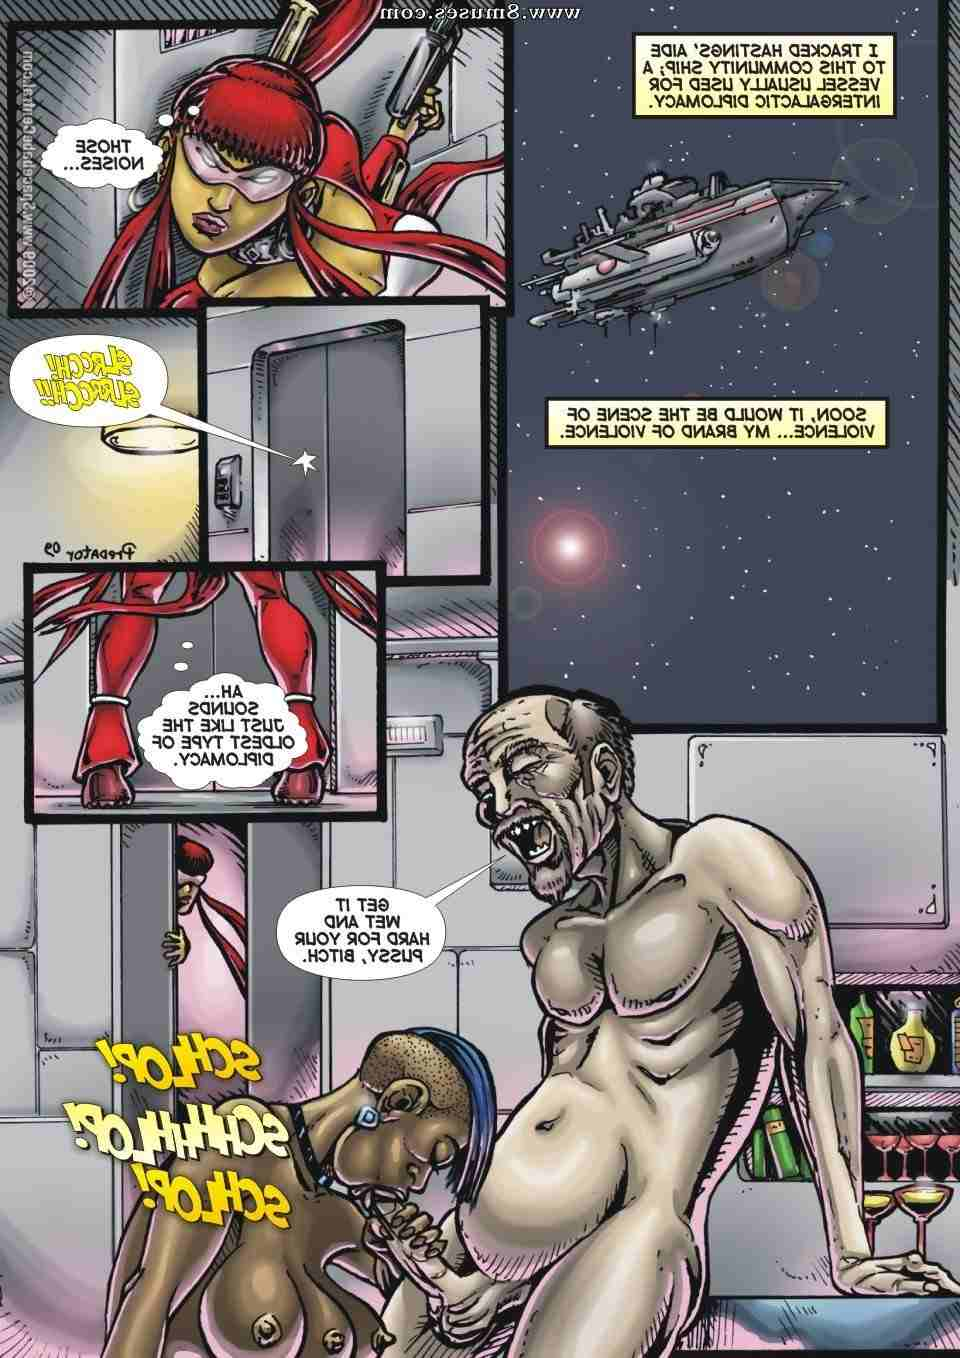 Central-Comics/Space-Babe-Central/Alien-Huntress Alien_Huntress__8muses_-_Sex_and_Porn_Comics_56.jpg